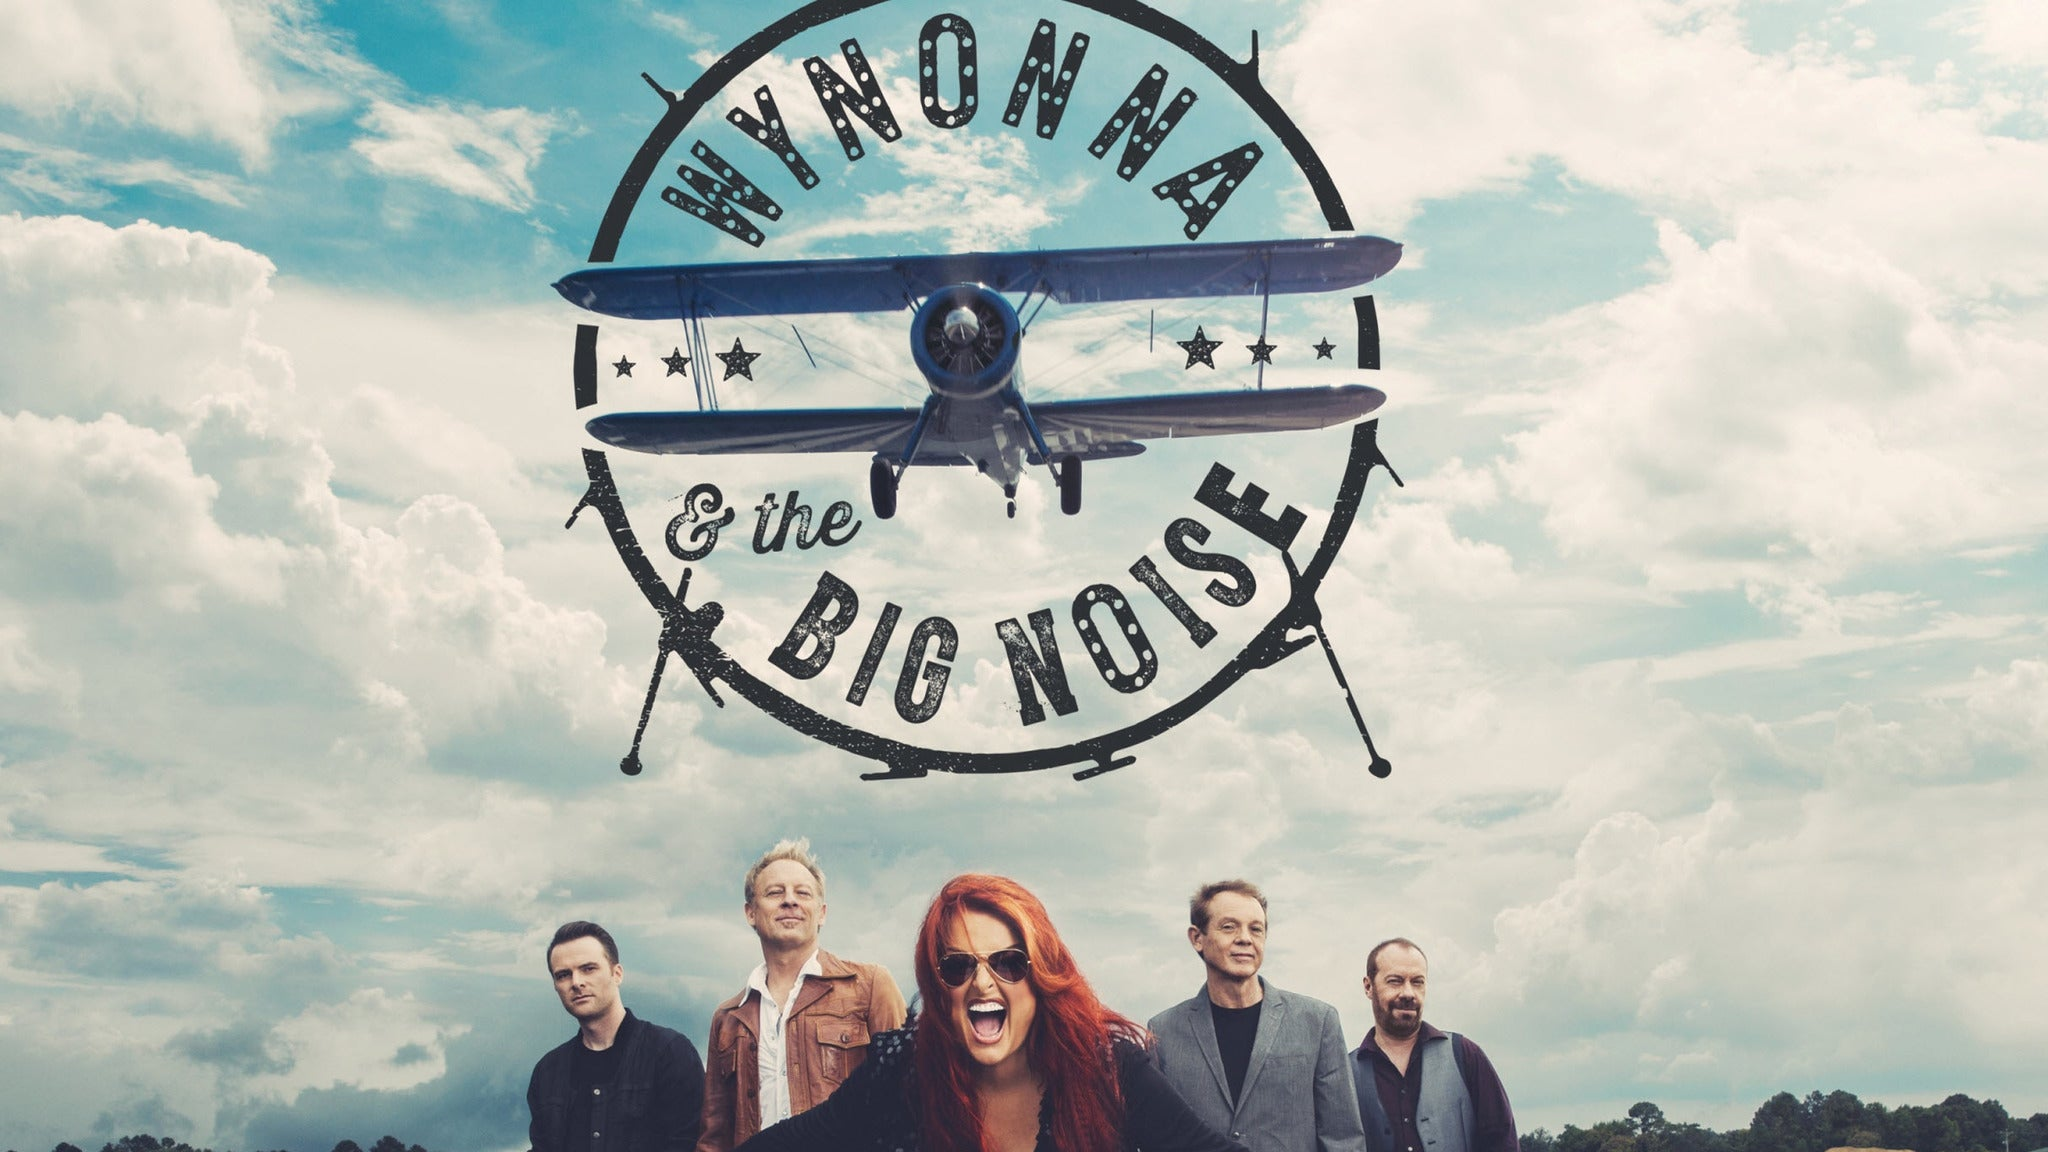 Wynonna and The Big Noise at Convocation Center Jonesboro - Jonesboro, AR 72401